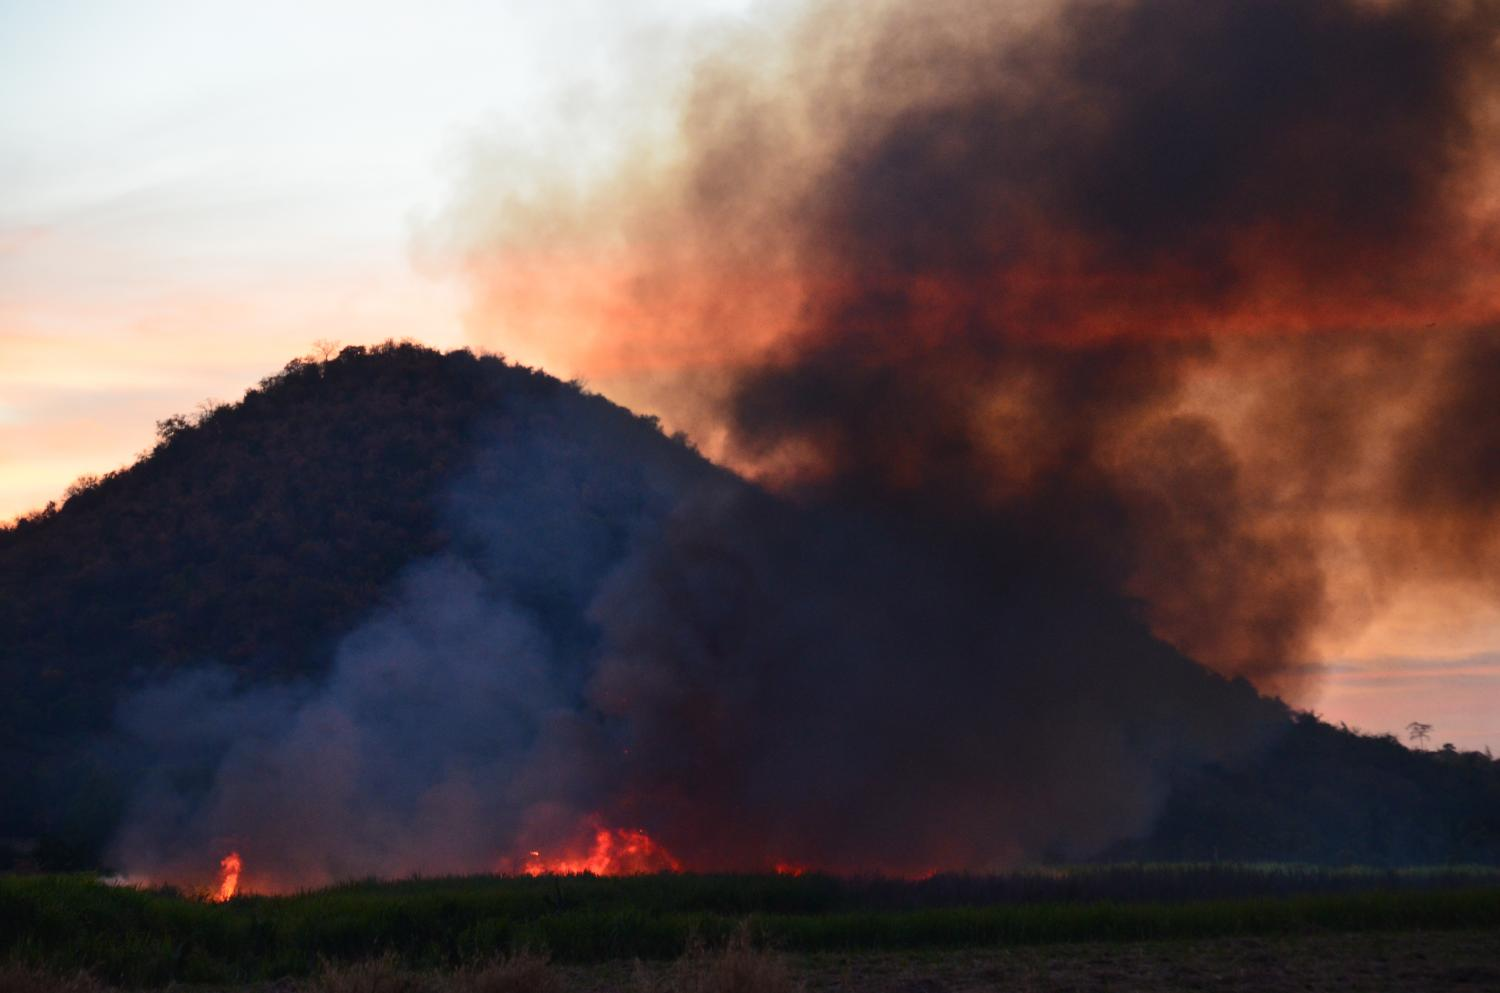 Fires started during sugarcane-harvesting season to clear land for the next crop have become a major environmental problem as more land has been set aside for cultivation.(Photo courtesy of community-support agriculture group)